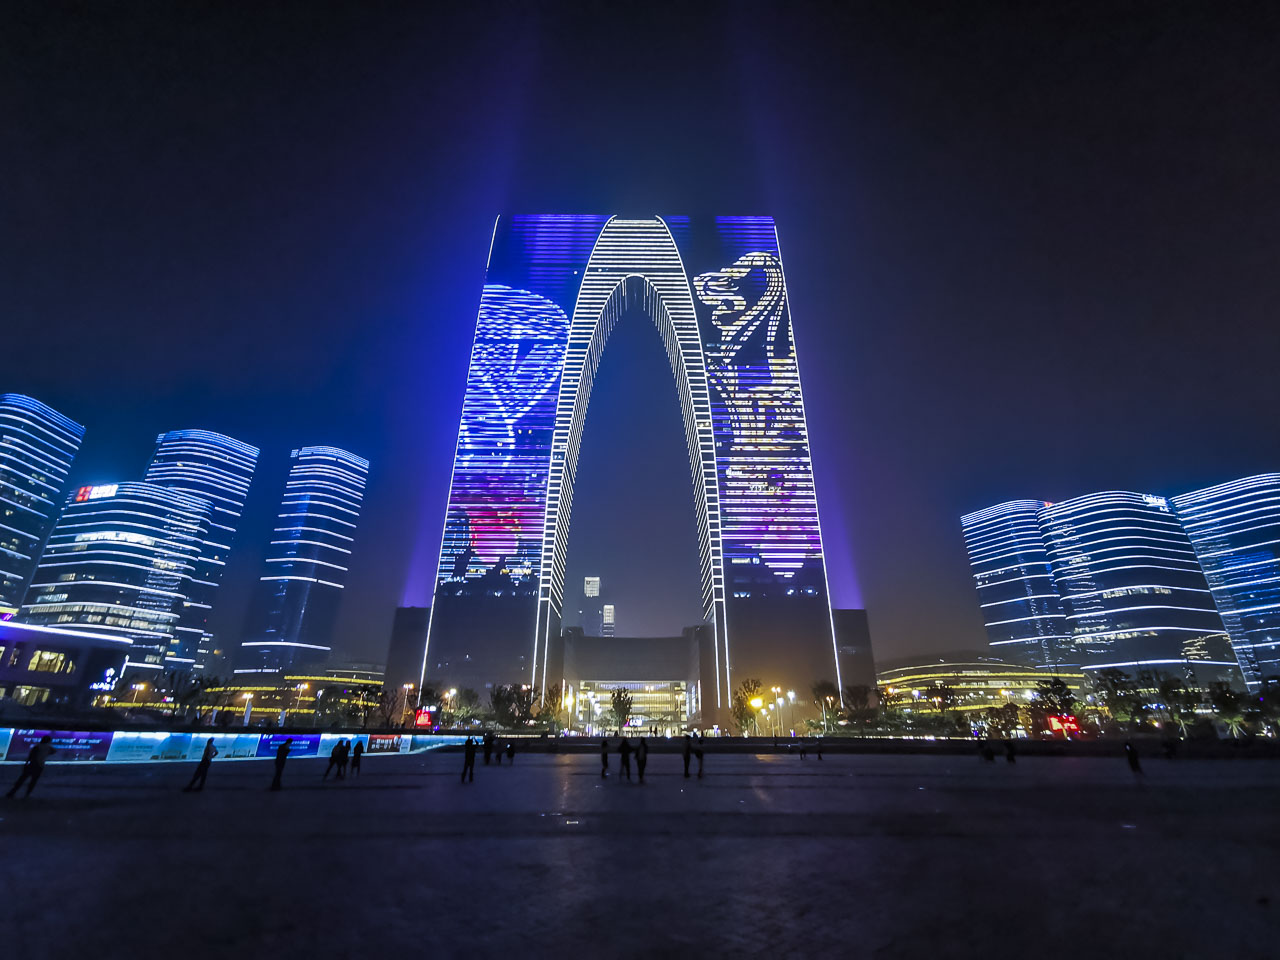 The Suzhou Waterfront at night